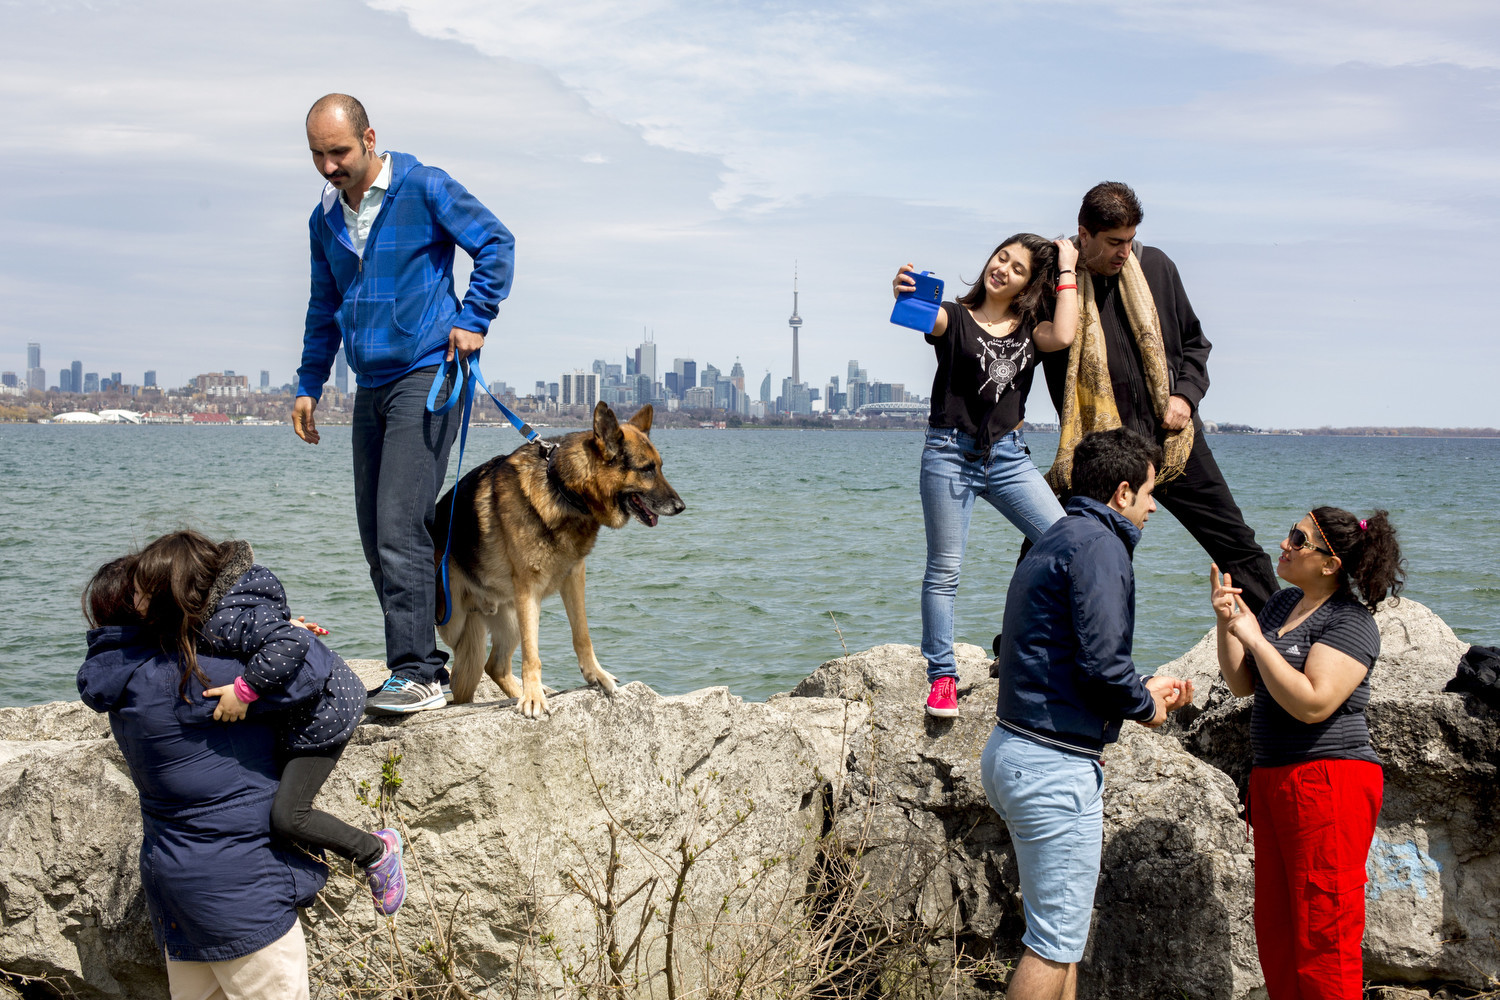 Iranian diaspora in 'Tehranto'.  Iranian refugee families enjoy a Sunday picnic at Toronto Humber Bay Park. From the left: Sarvenaz Fahimi with her daughter and Behzad Abdolahi with his dog. Hana Khanjani taking a selfie with his father Nosrat Khanjani. Arash Tavakoli and Arezoo Victor talking together.